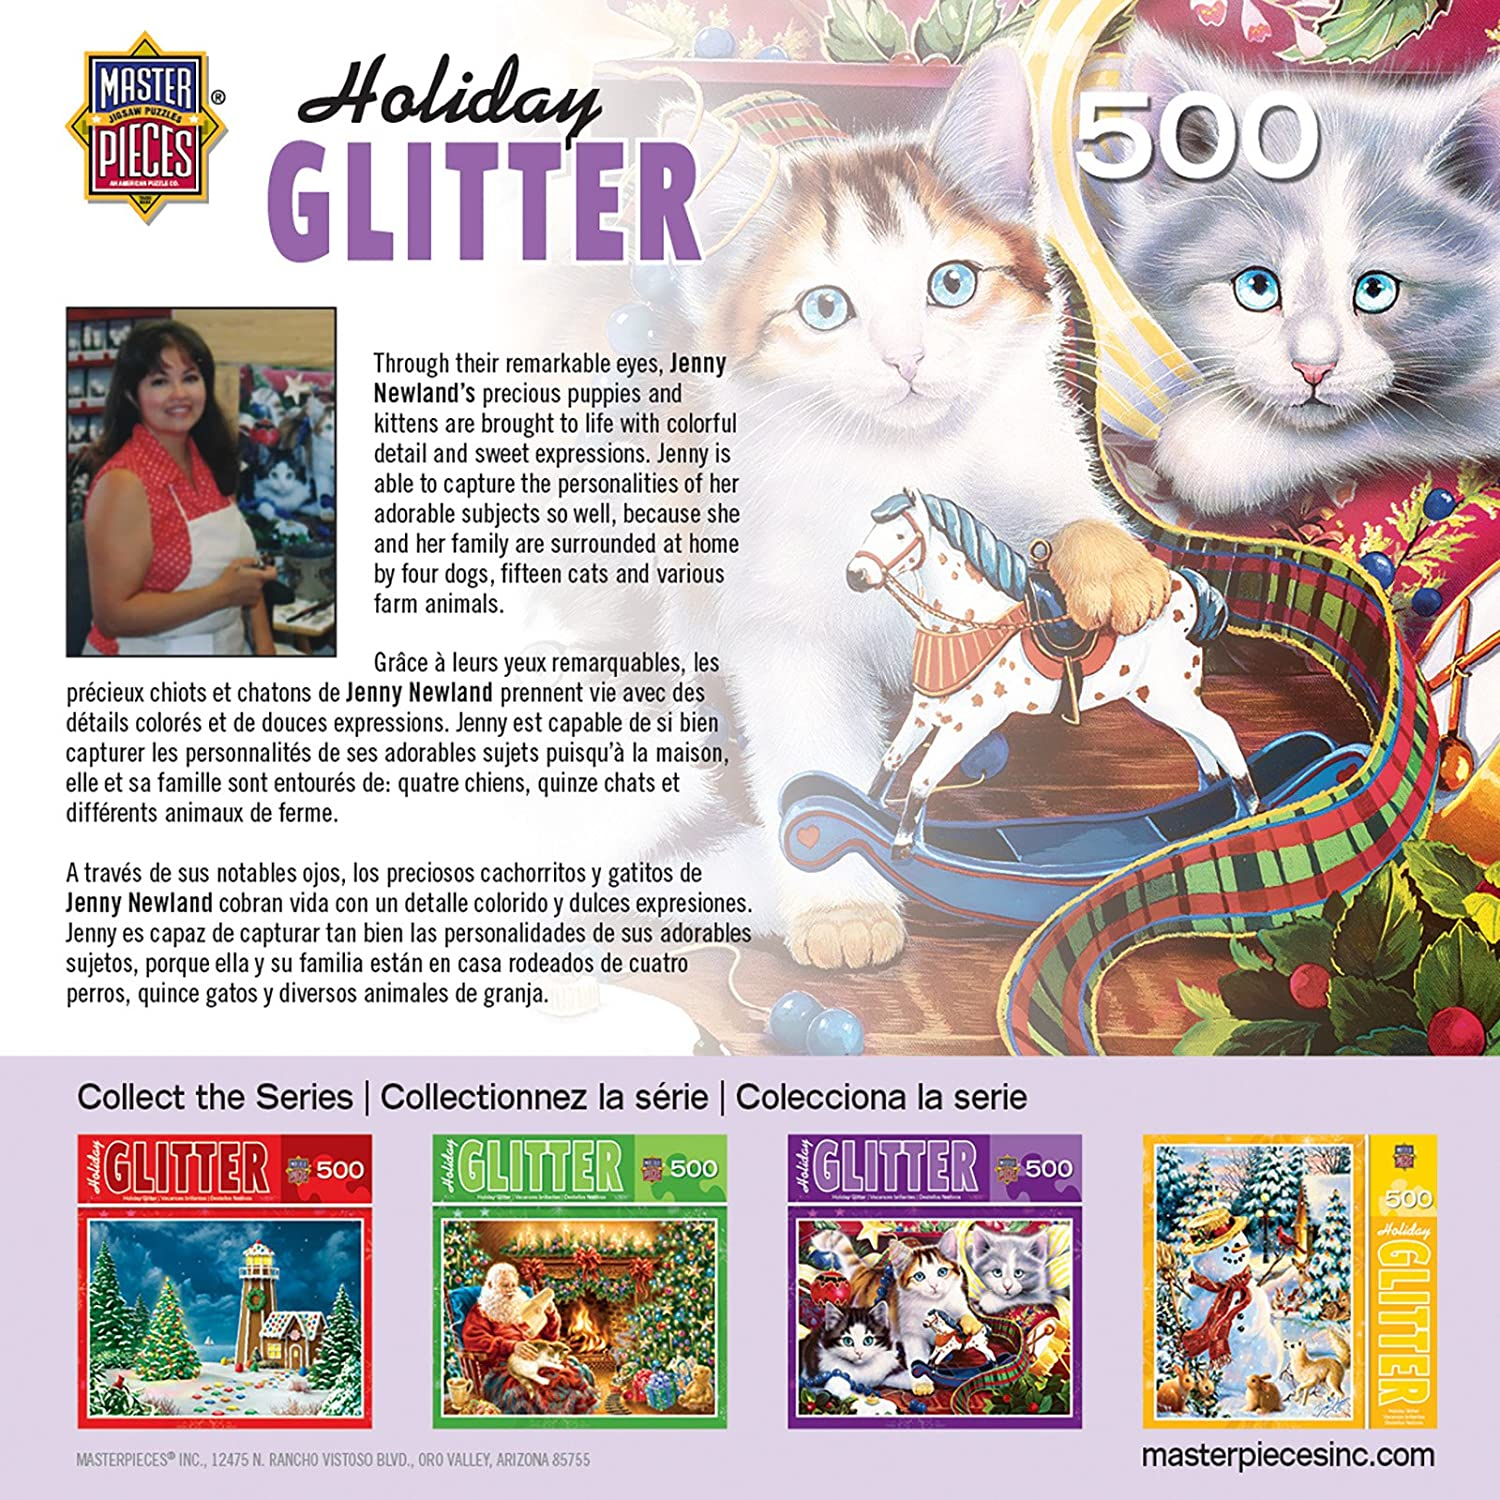 Amazon.com: MasterPieces Holiday Glitter Holiday Mischief Kittens Jigsaw Puzzle by Jenny Newland, 500-Piece: Toys & Games